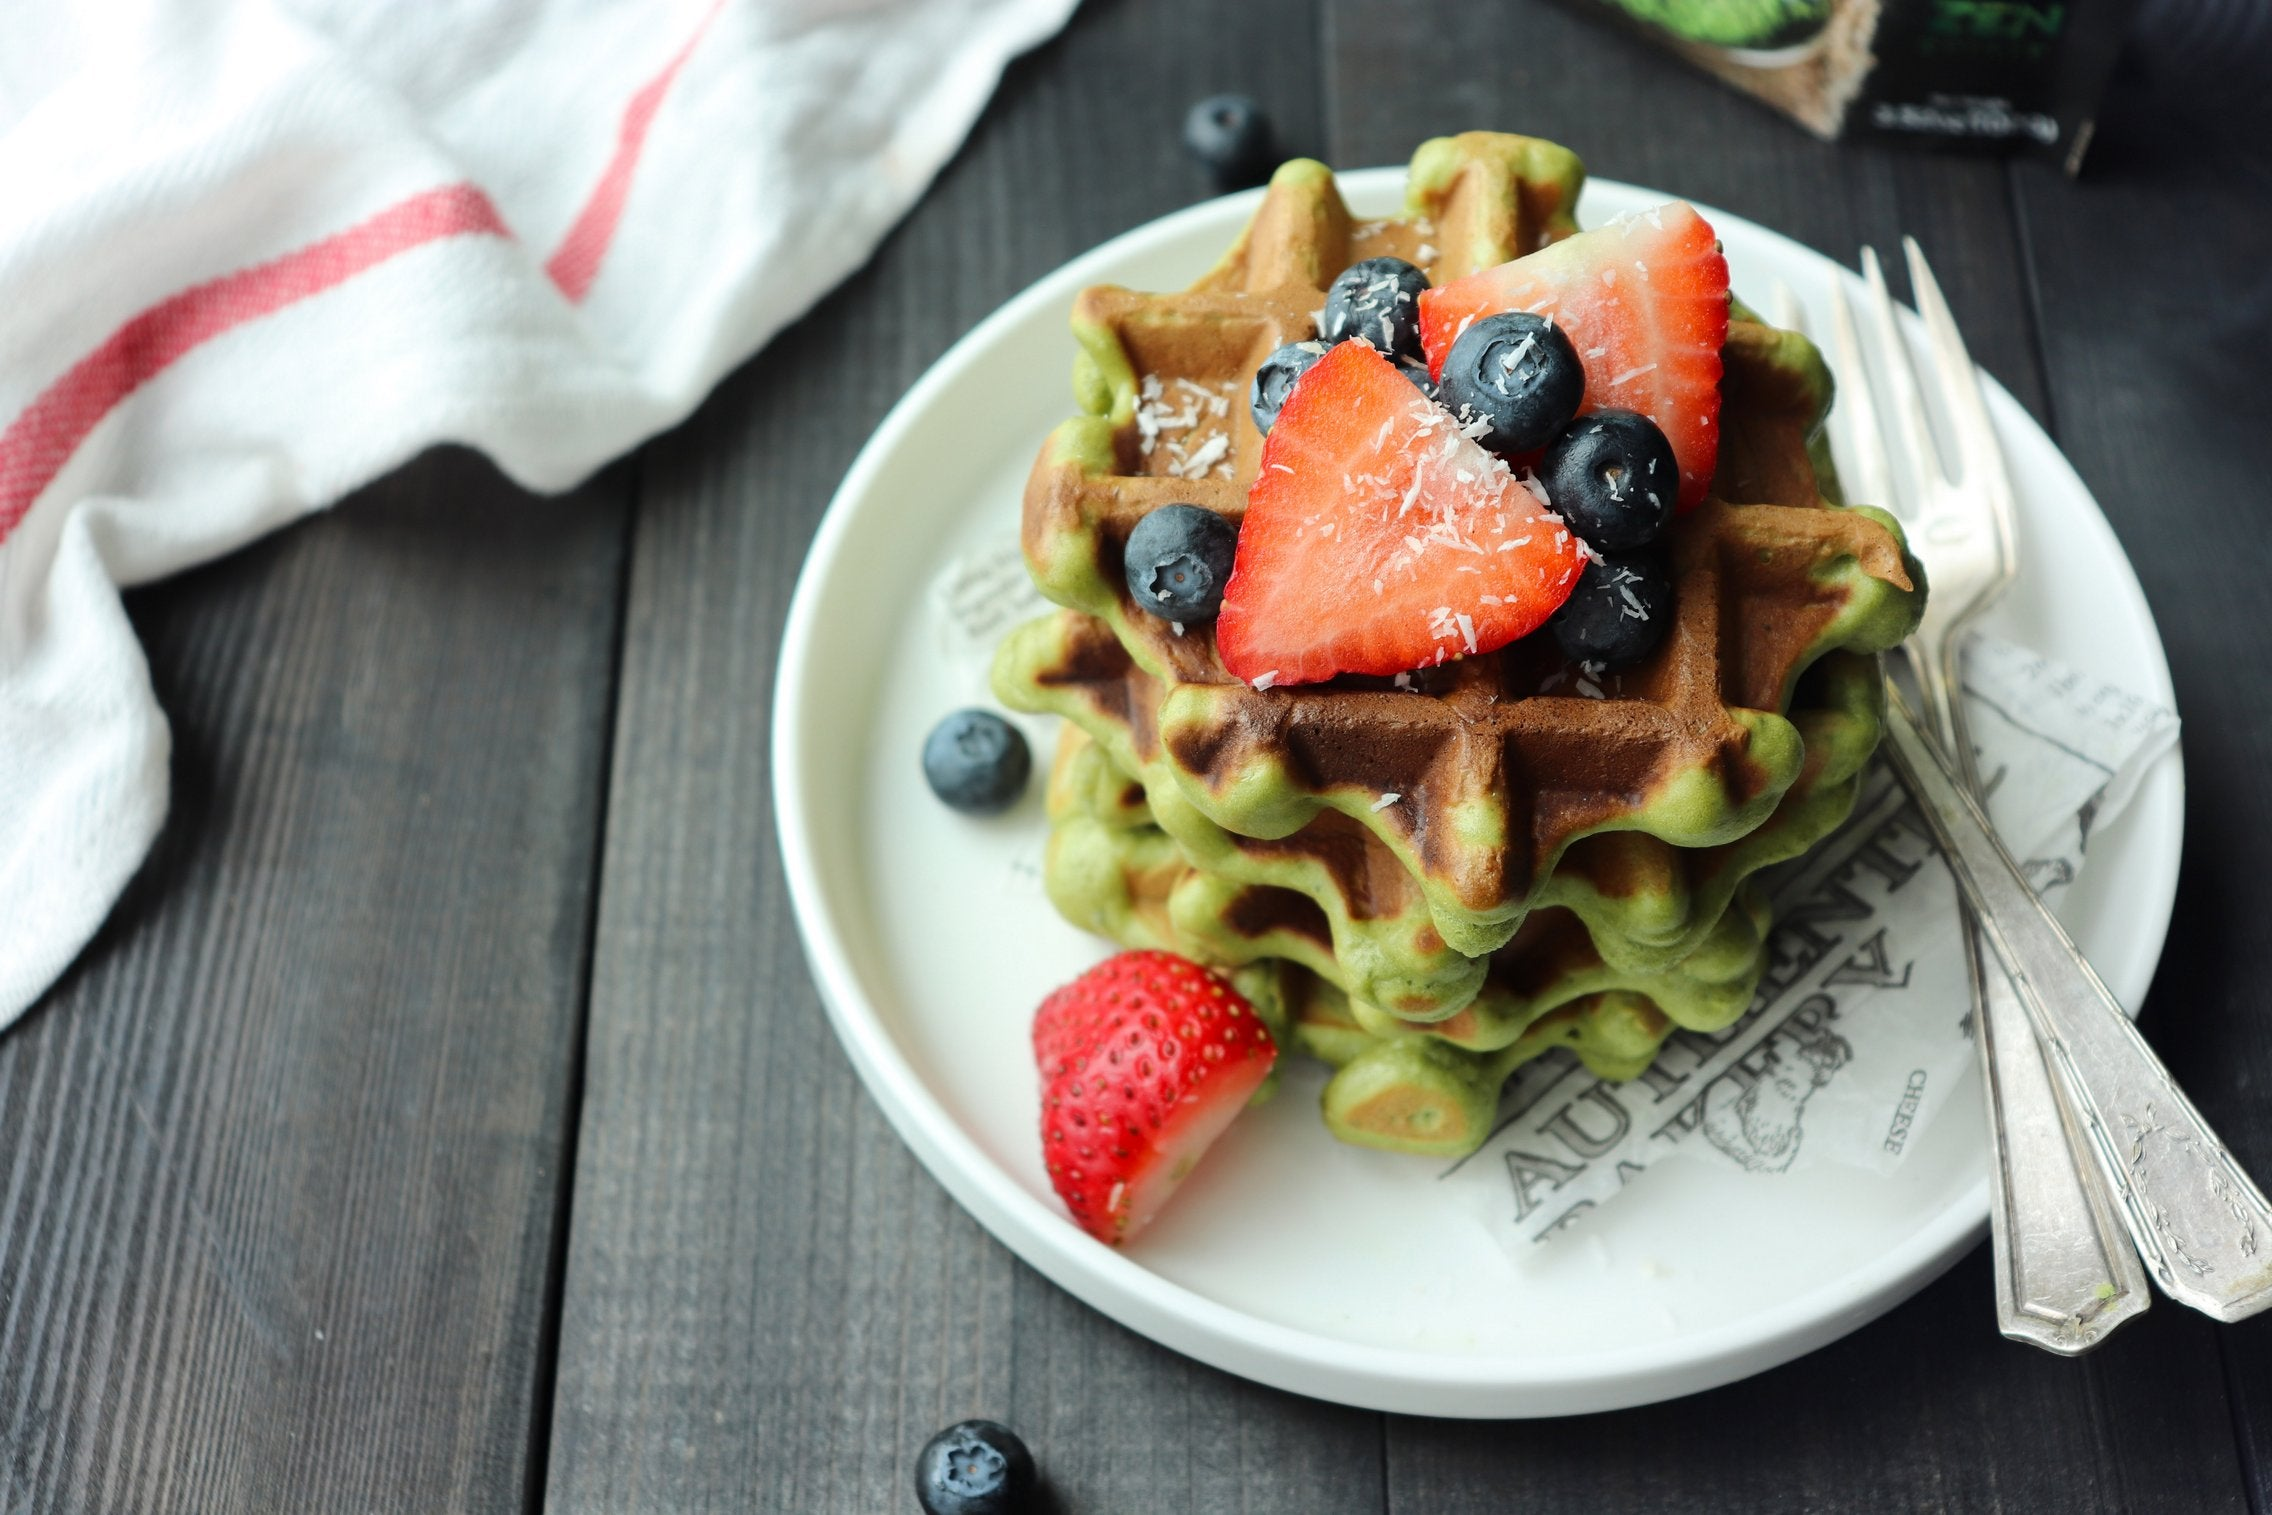 coconut-matcha-green-tea-waffles-final